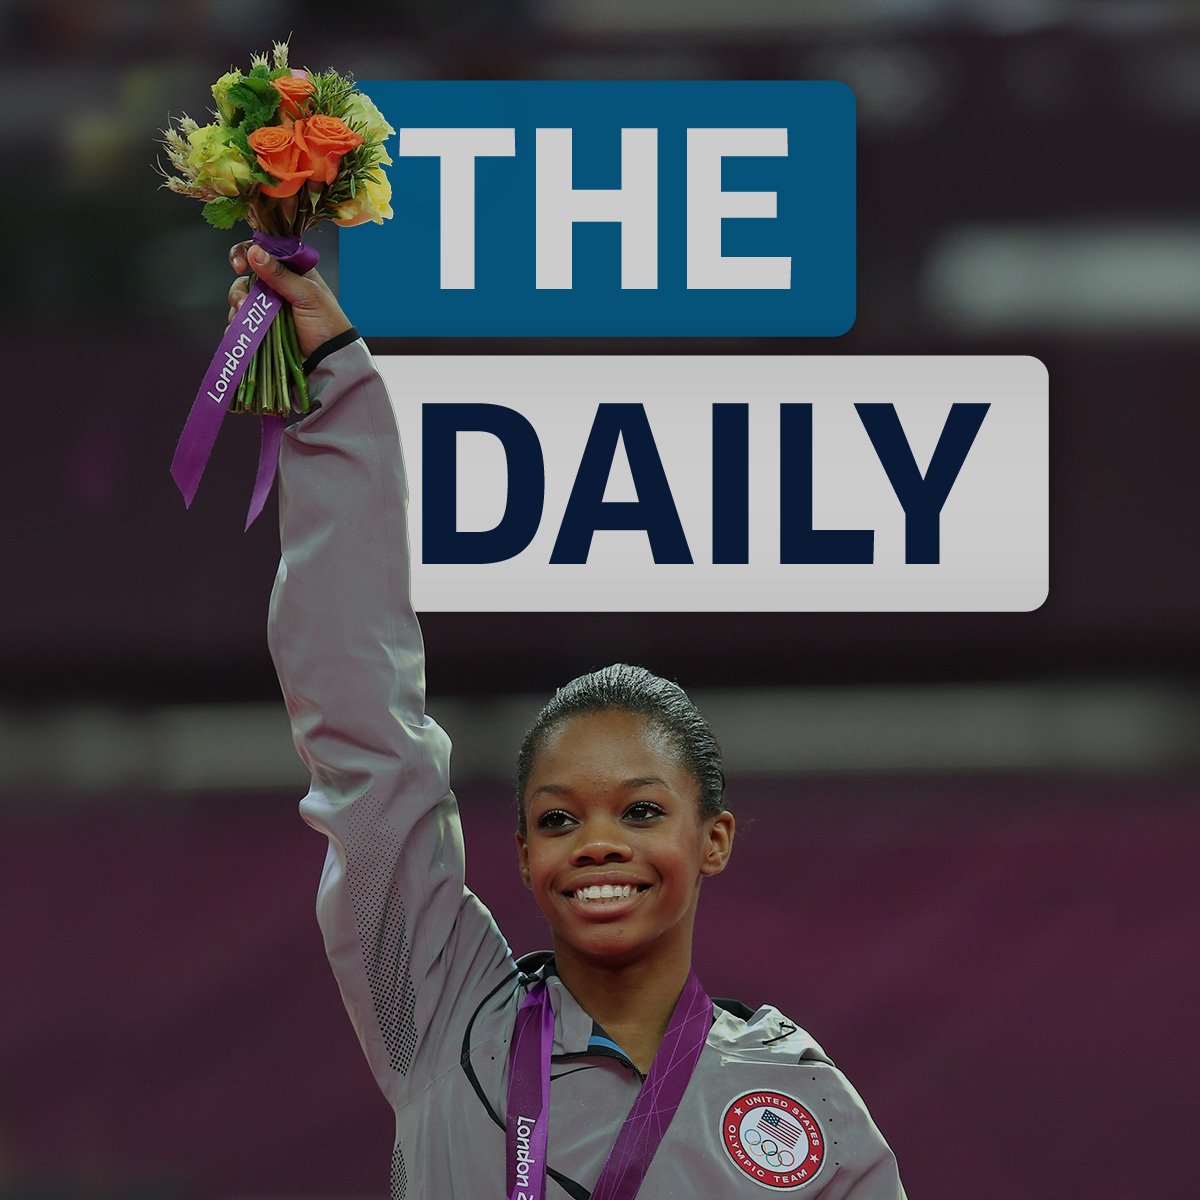 """The Daily"" app by News Corporation"